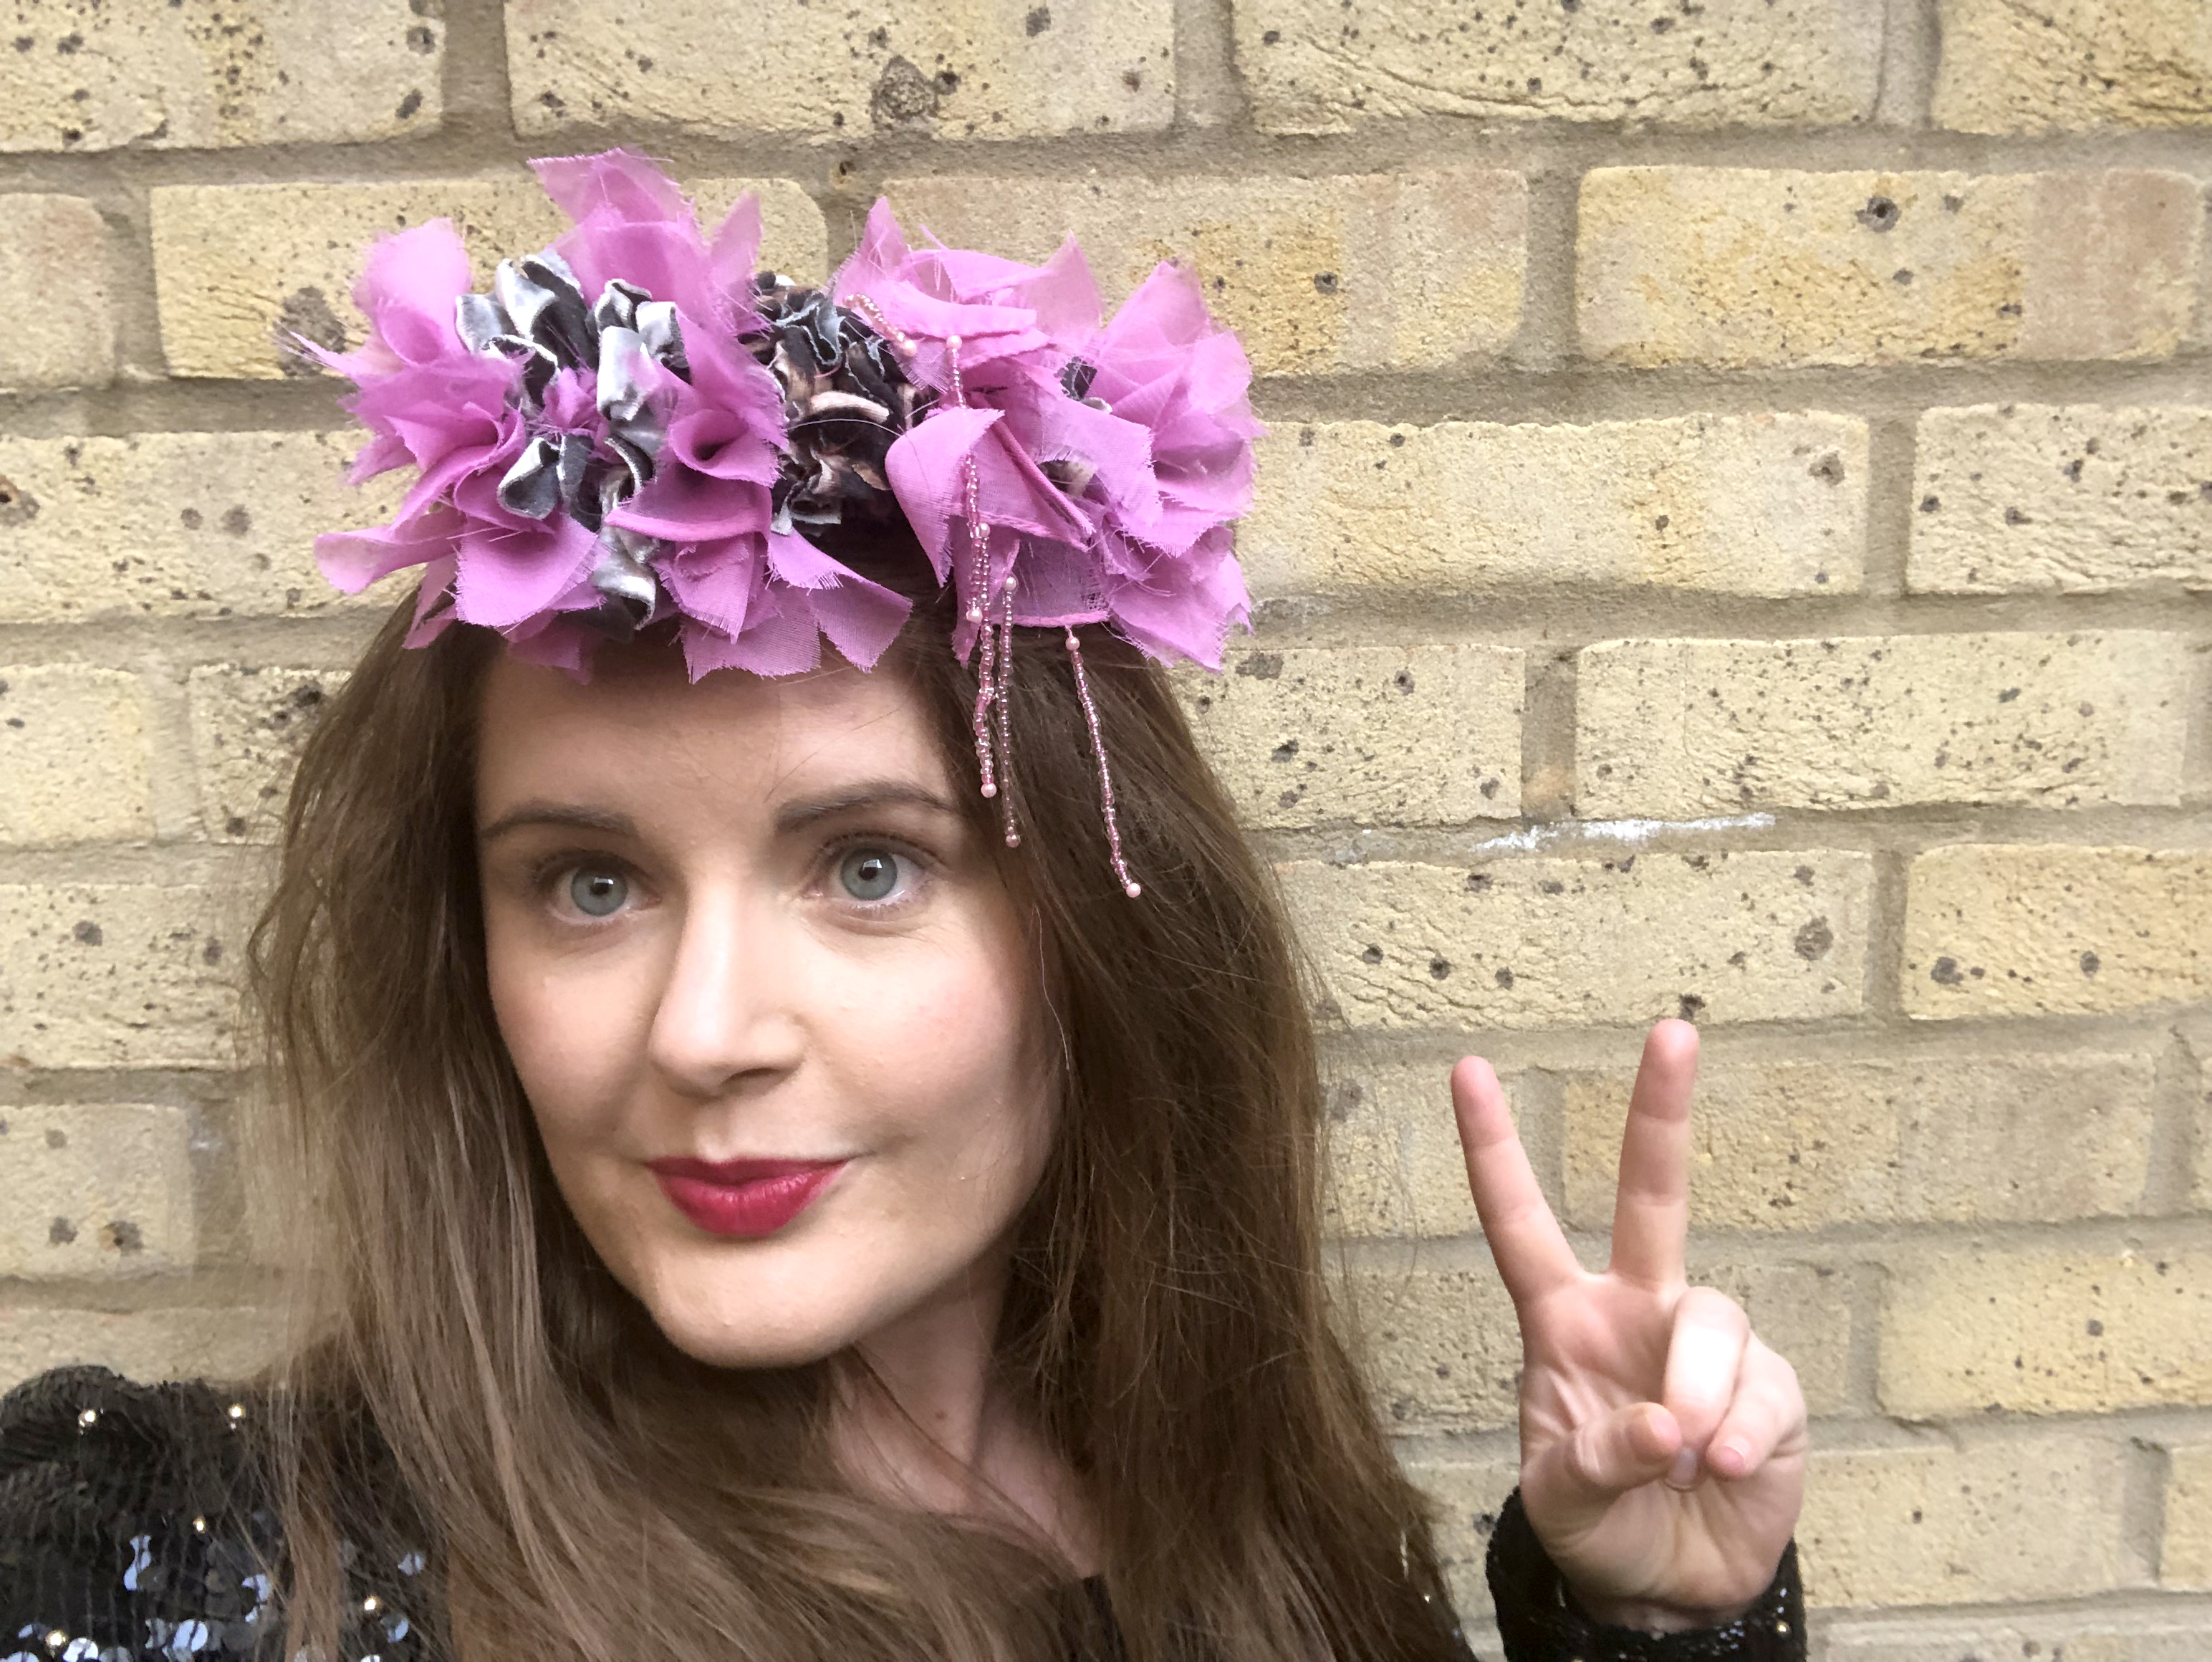 Elspeth Jackson from Ragged Life modelling a pink punk rag rug headband made using recycled materials